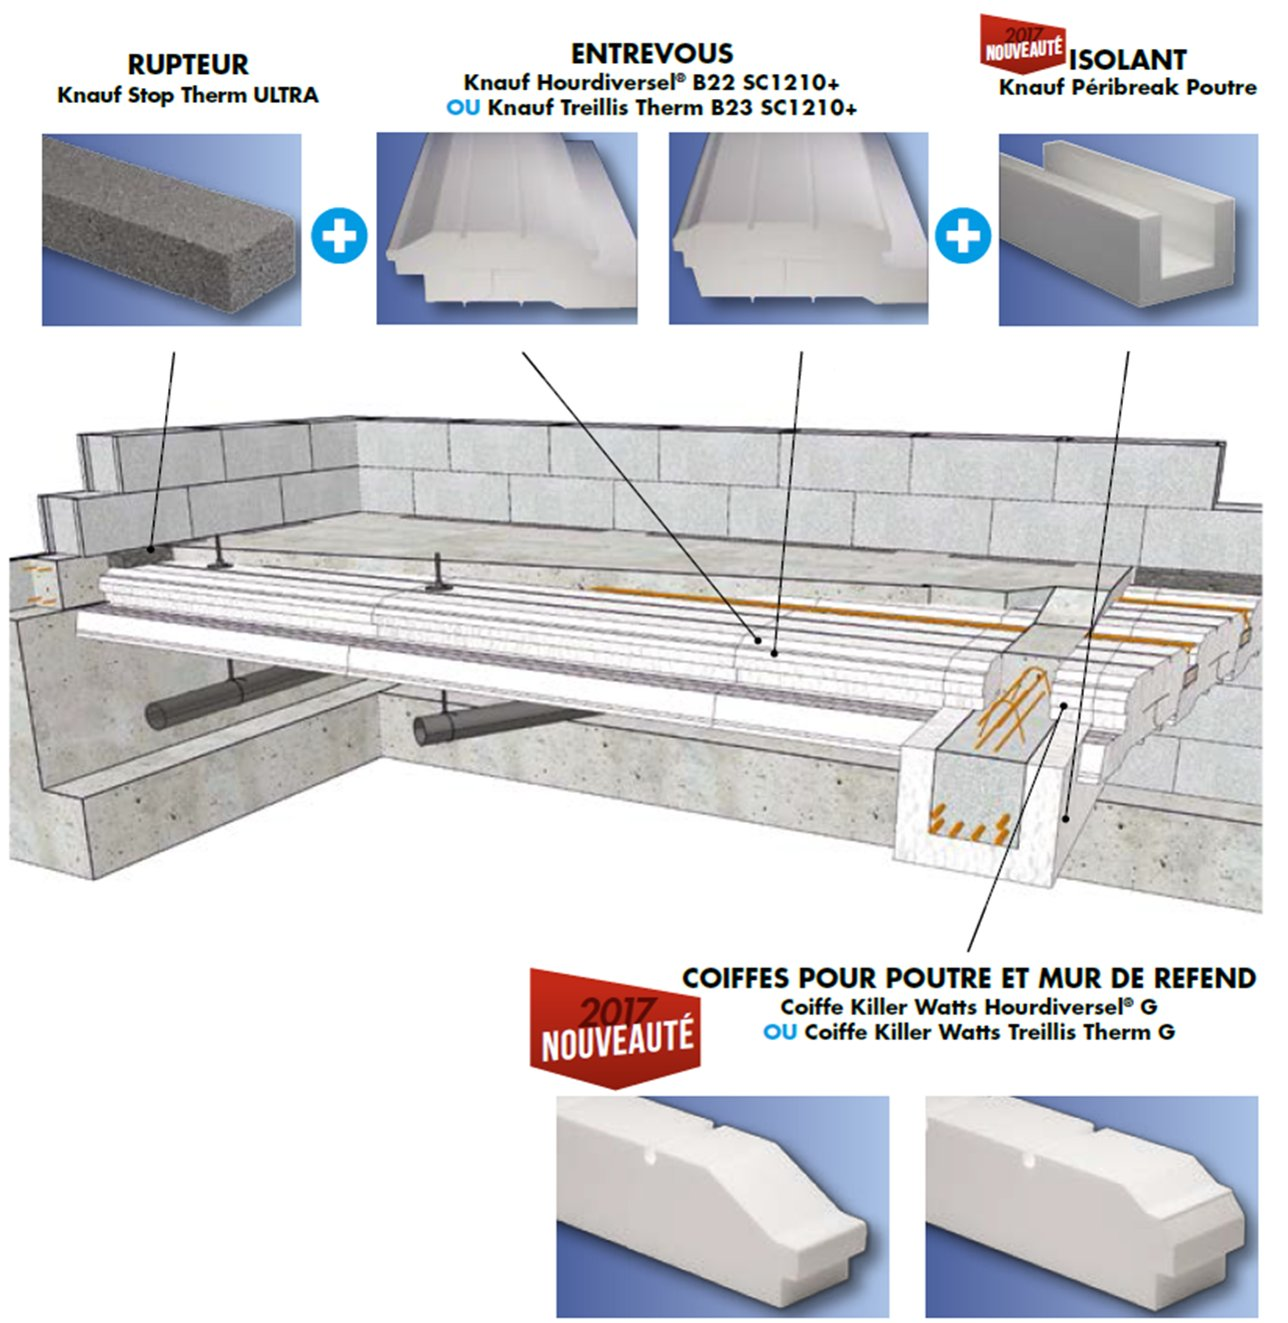 Knauf Péribreak Poutre - solution